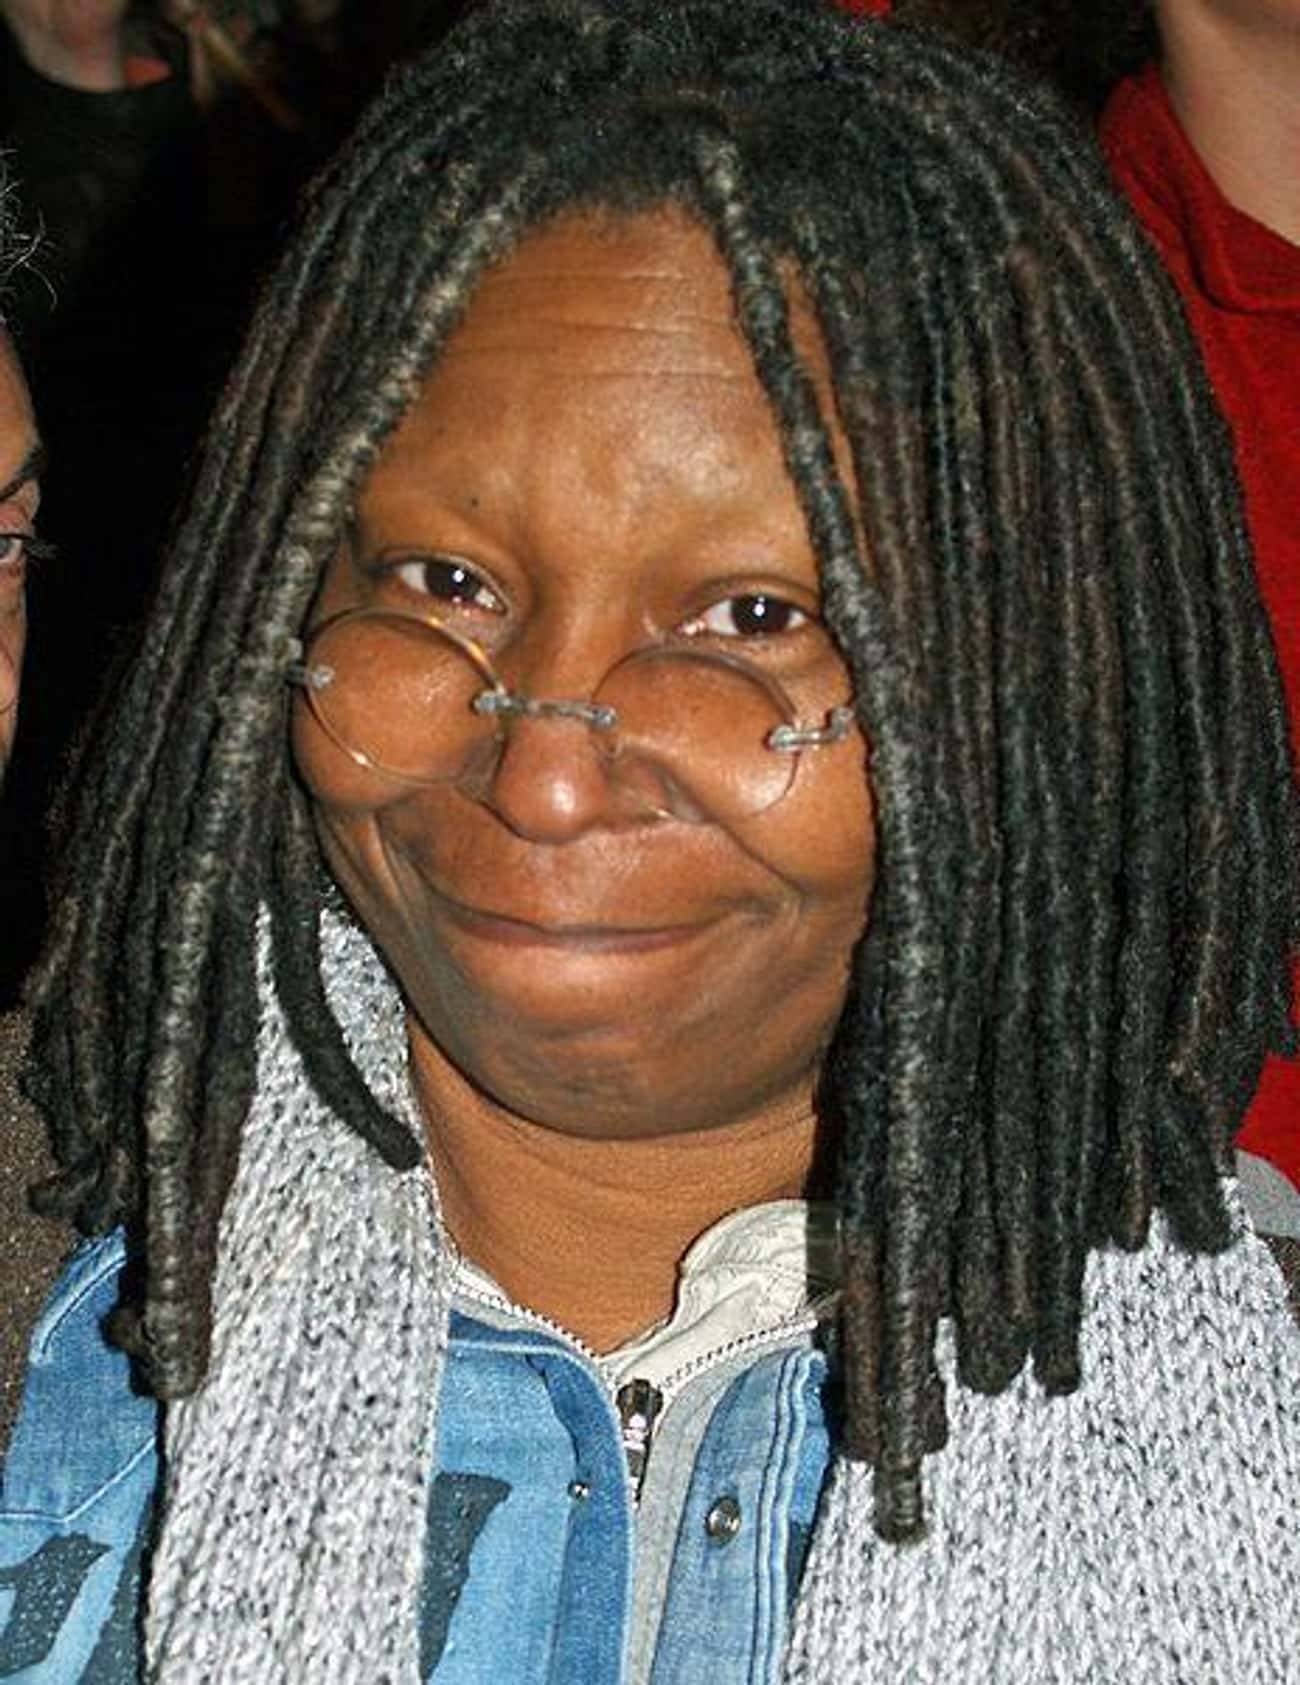 Whoopi Goldberg is listed (or ranked) 1 on the list 18 Crazy Things Celebrities Have Done While High